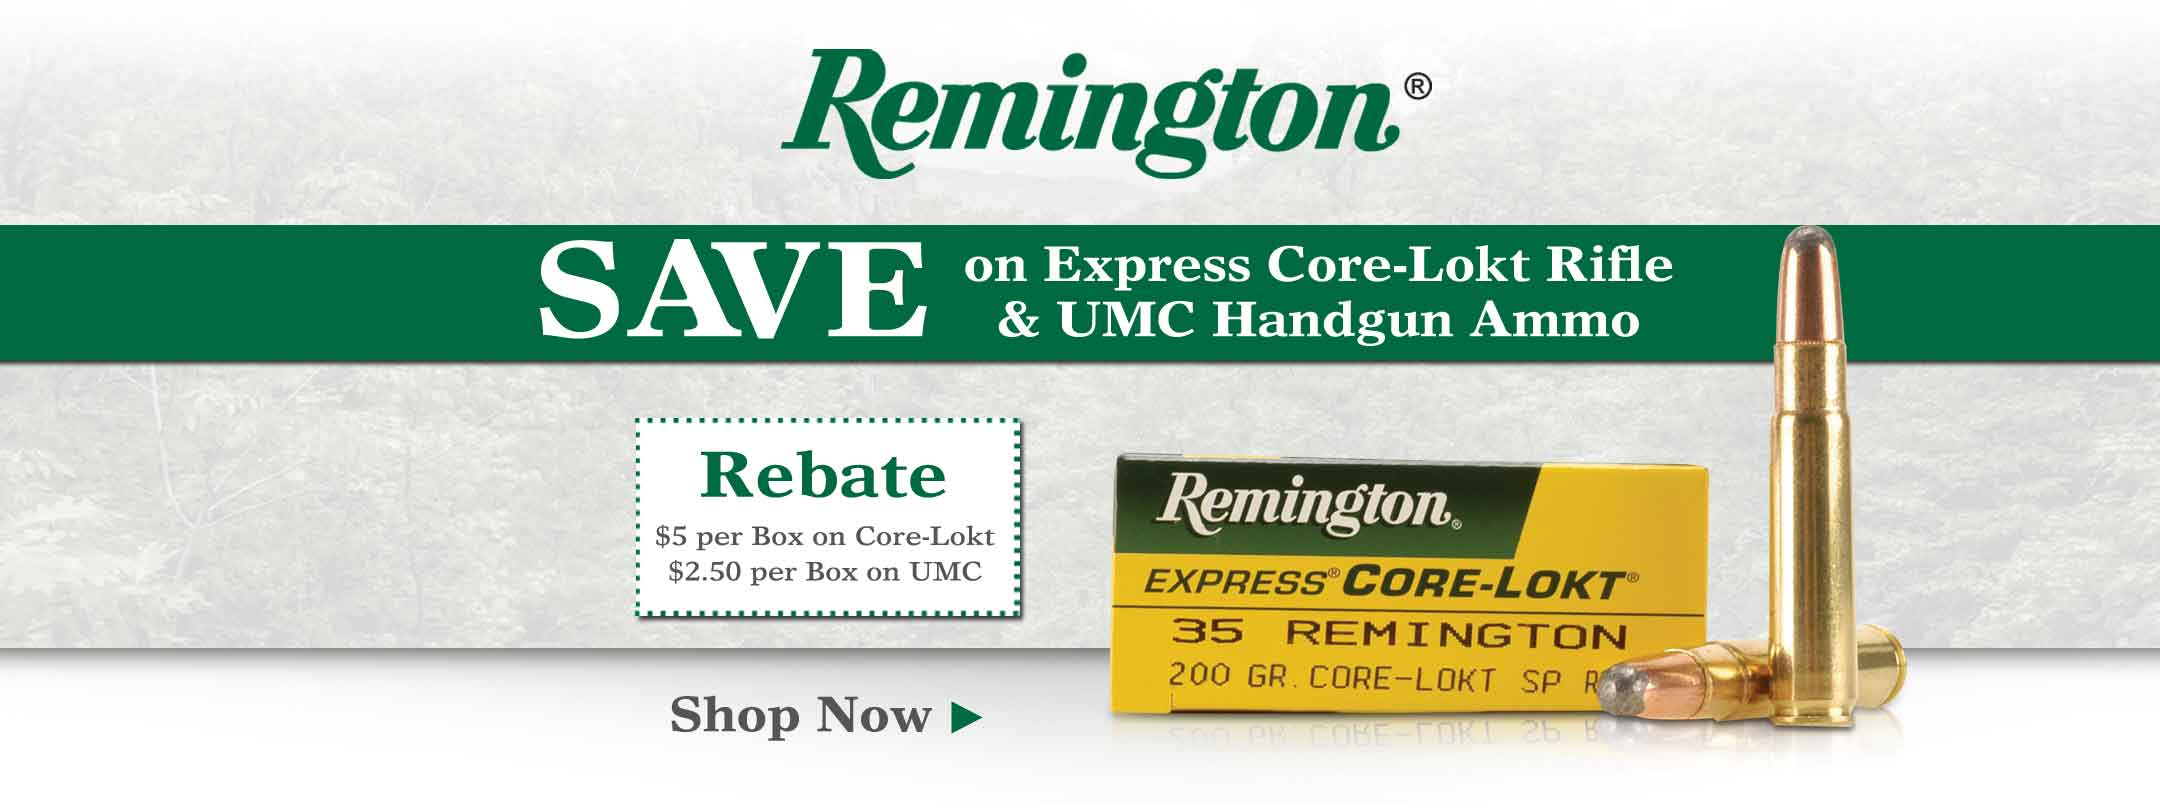 Save on Remington Ammo + Rebate